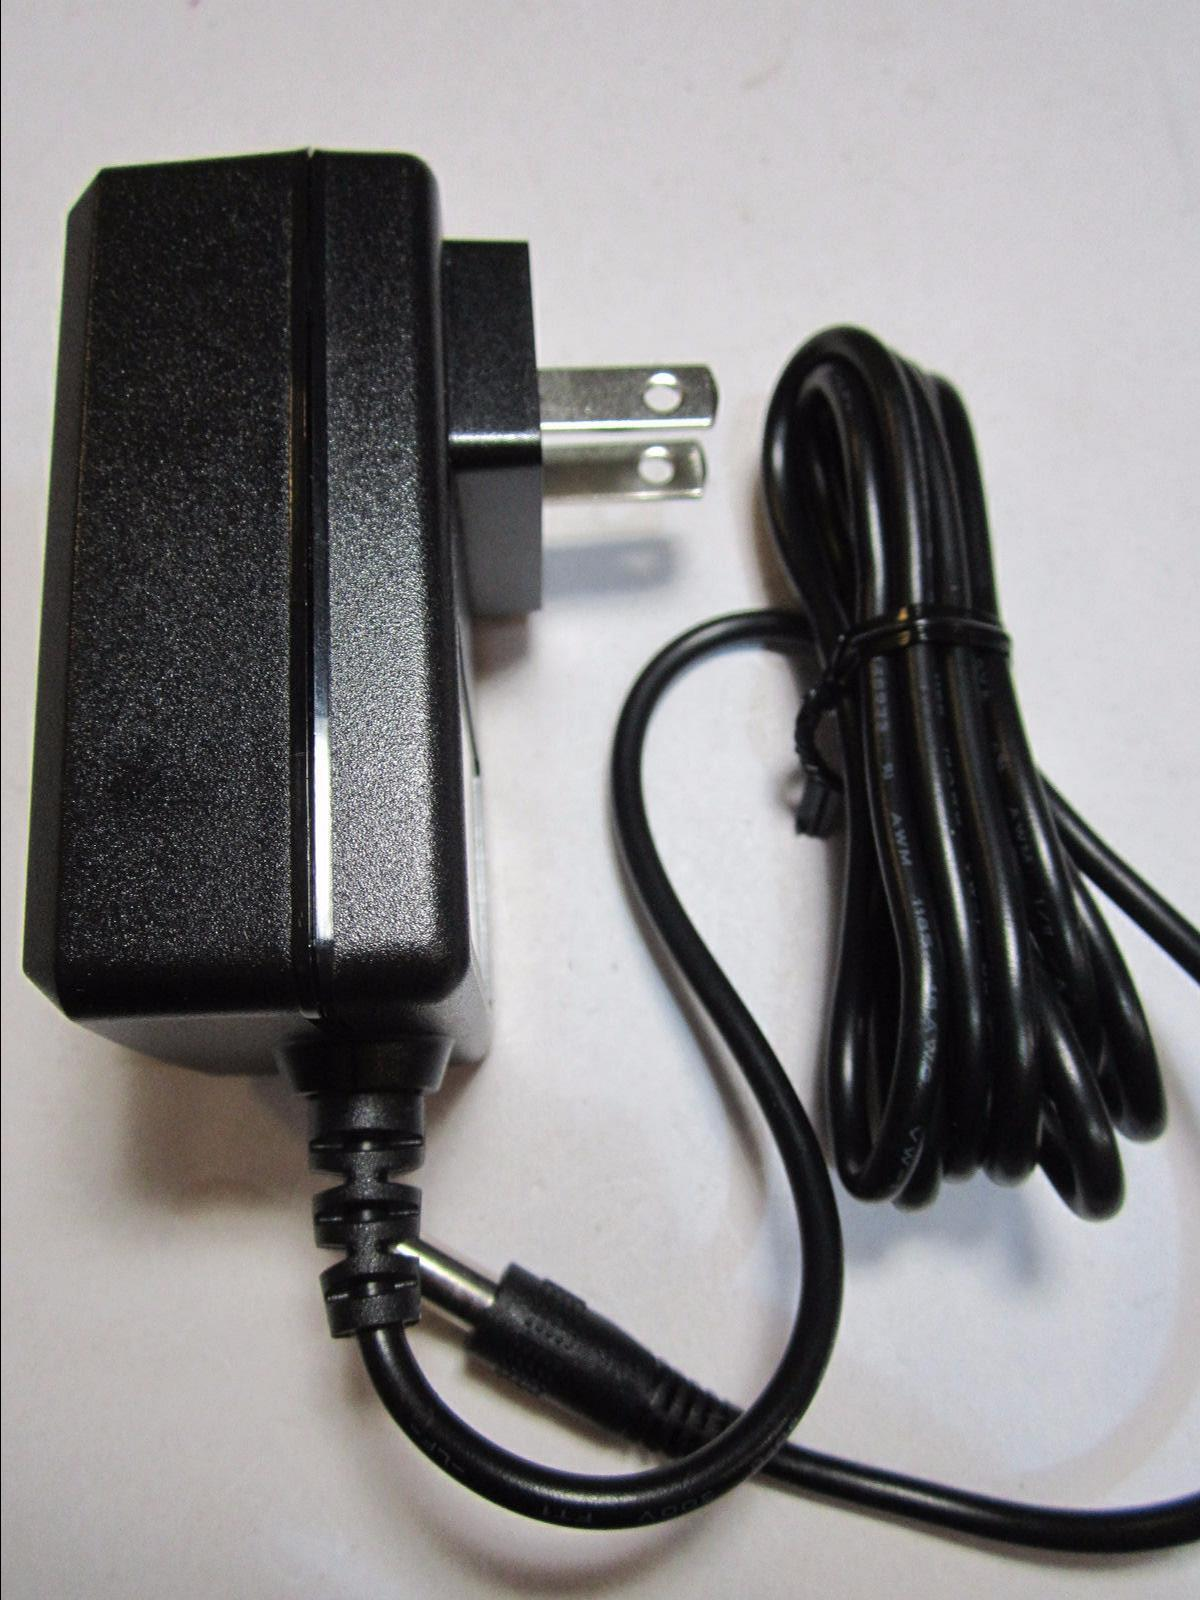 USA US American 5V 3A 2.5A AC-DC Switching Adaptor Power Supply 4mm x 1.7mm